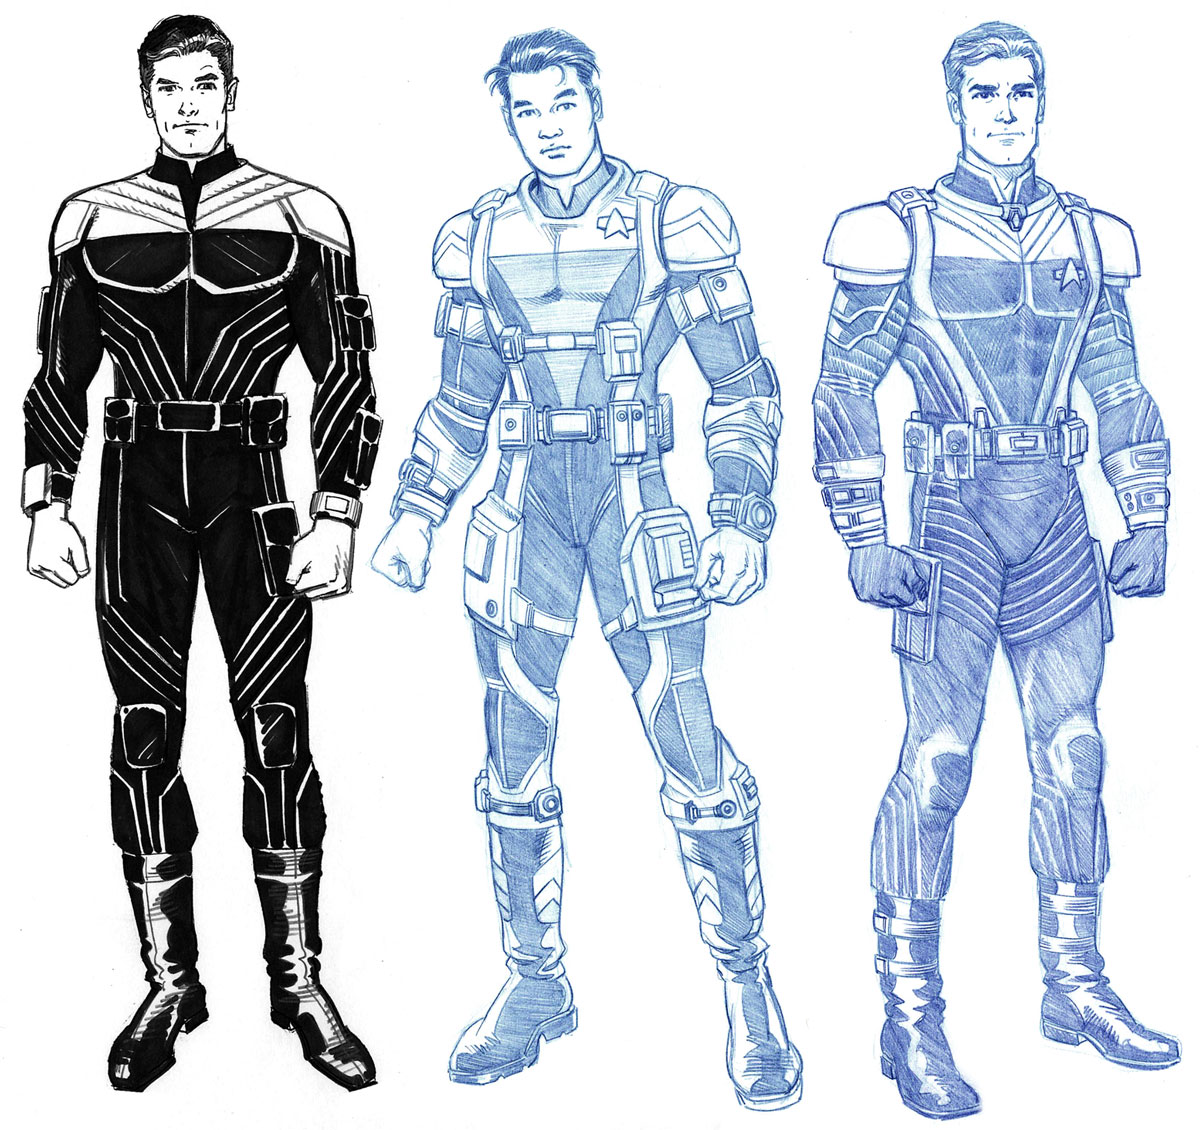 Elite Force Suits Costume Design Pencil And Marker 2000